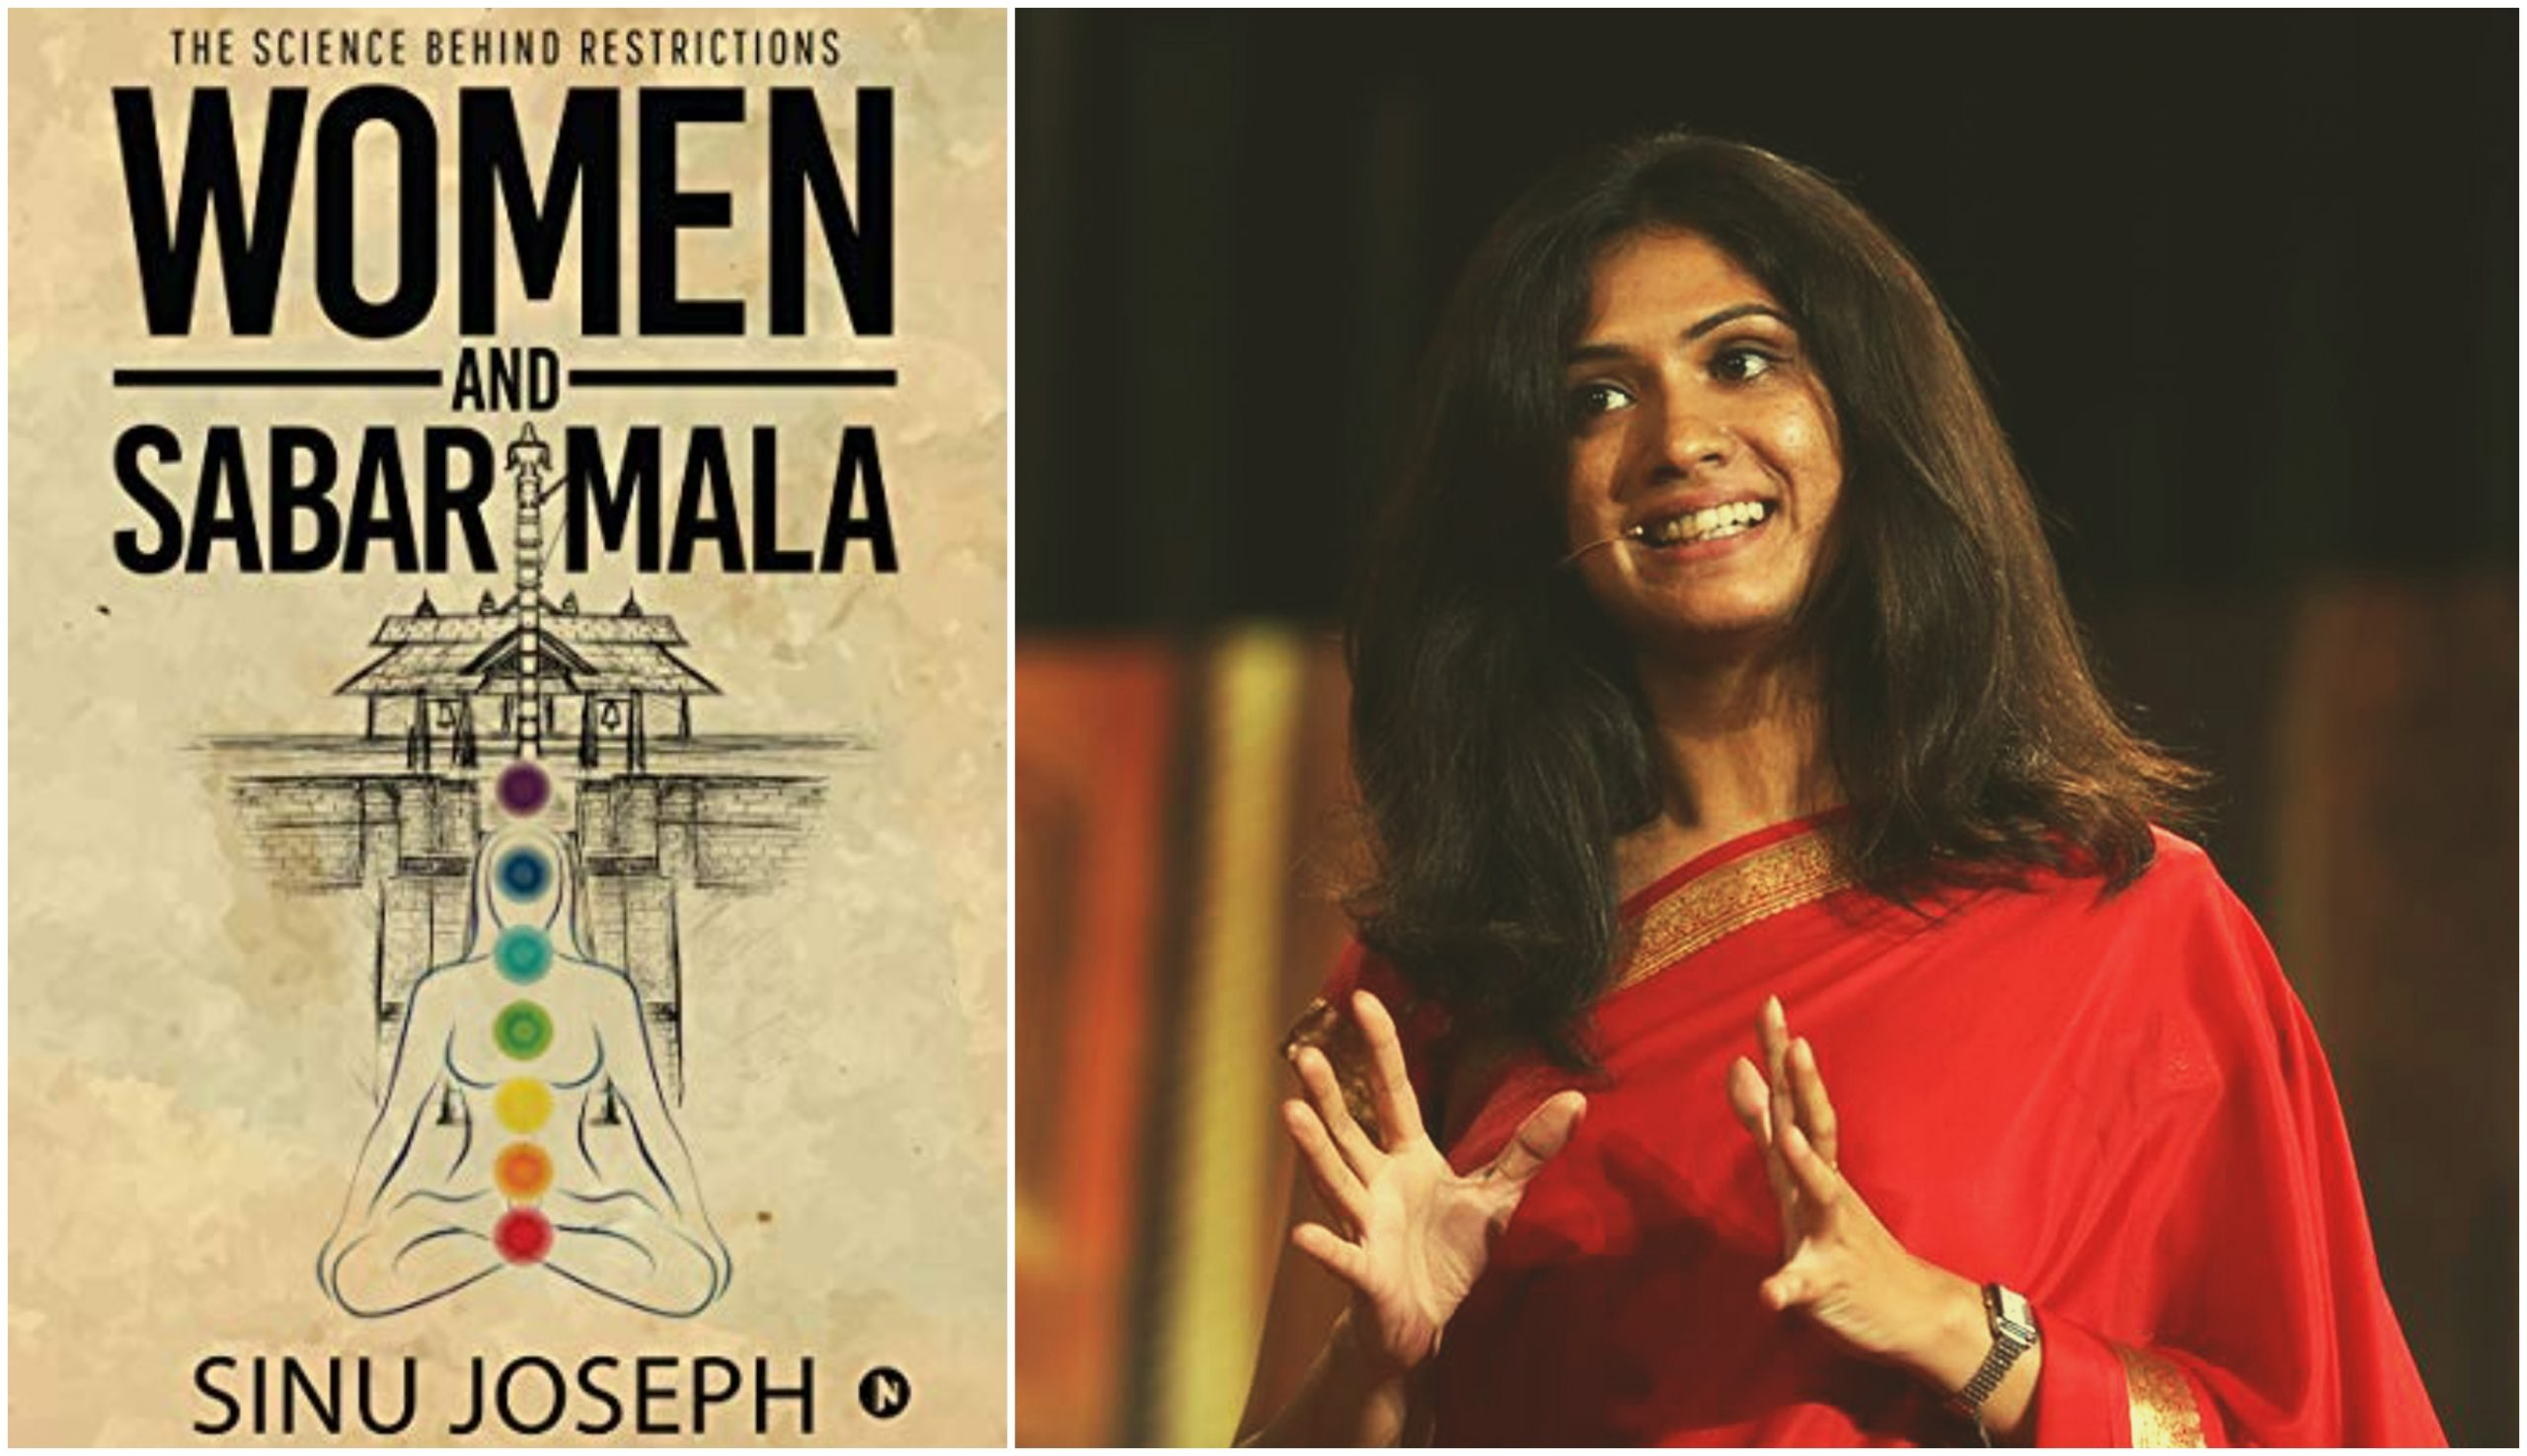 Book Review: Women And Sabarimala By Sinu Joseph